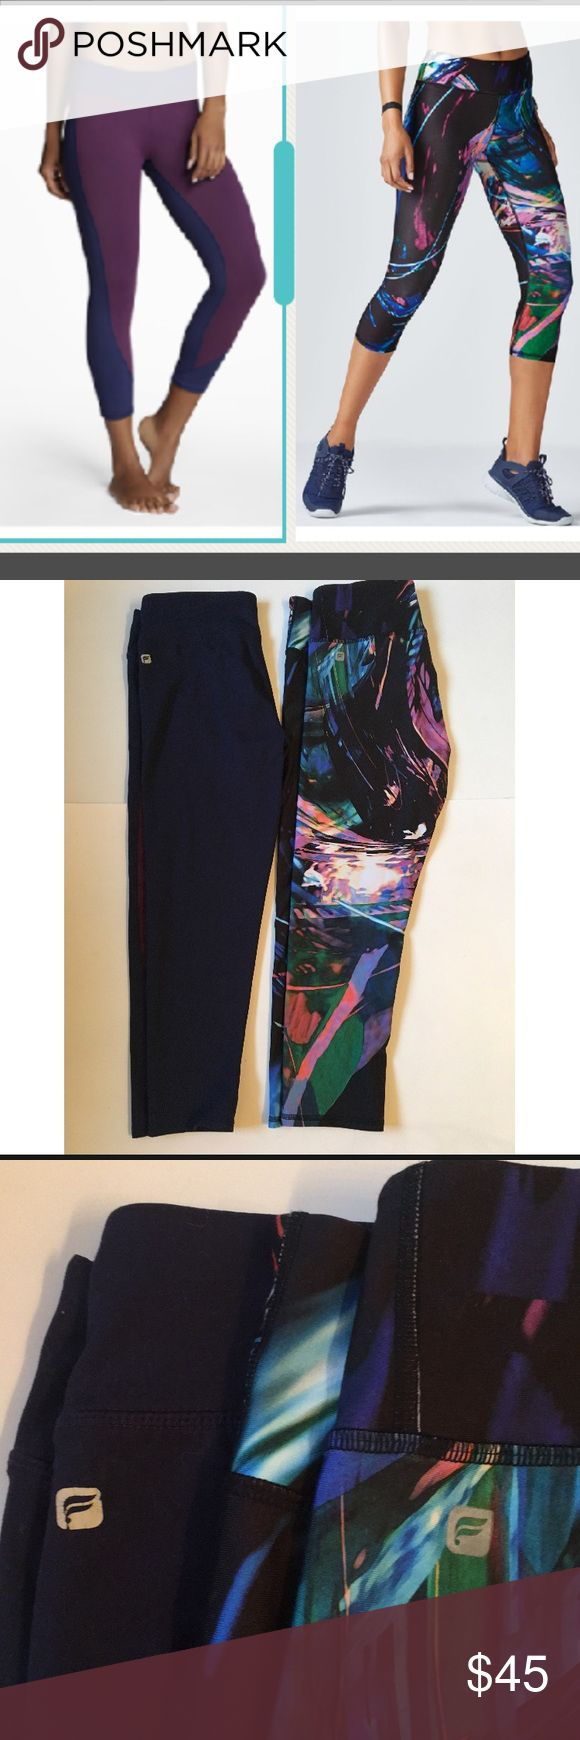 BUNDLE OF 2 - Fabletics Cropped Leggings Bundle of 2 Fabletics Cropped Leggings/Capris.  The patterned one is the Salar and the purple color block one is the Sydney.  Both are size Small, but the rip tag is only attached to the Salars.  Both high-quality & not see- through!  The Salars only worn once (I am a boring black leggings kind of girl) & the Sydneys in great used condition.  See pictures for measurements.  You will get both pairs of these leggings with your purchase. Fabletics Pants…